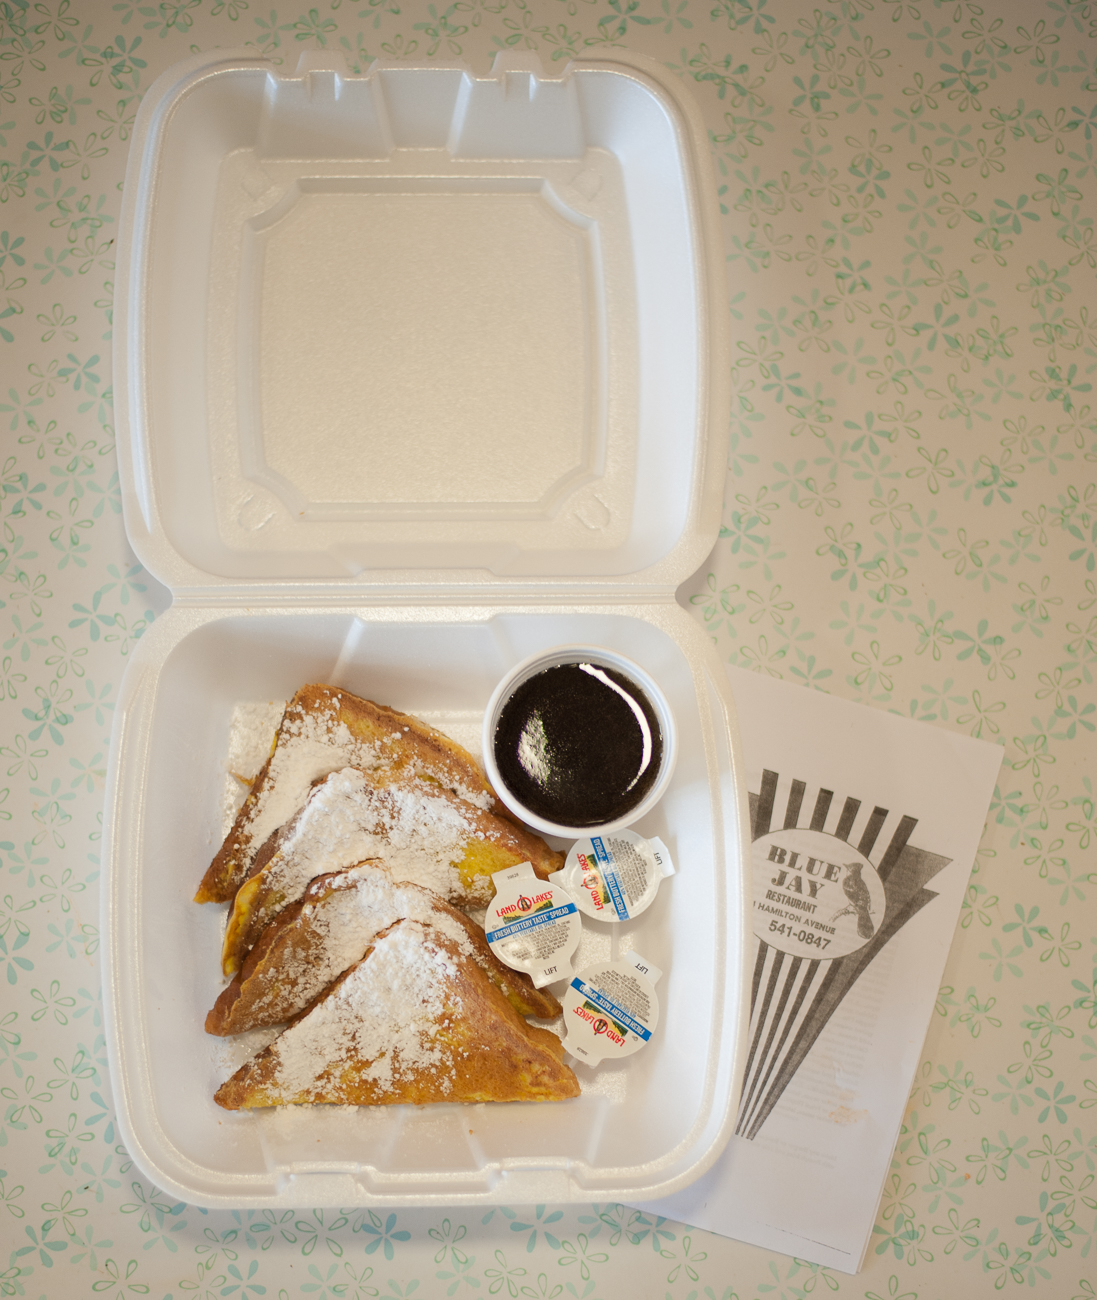 French Toast with butter, syrup, and powdered sugar / Image: Kellie Coleman // Published: 4.8.20